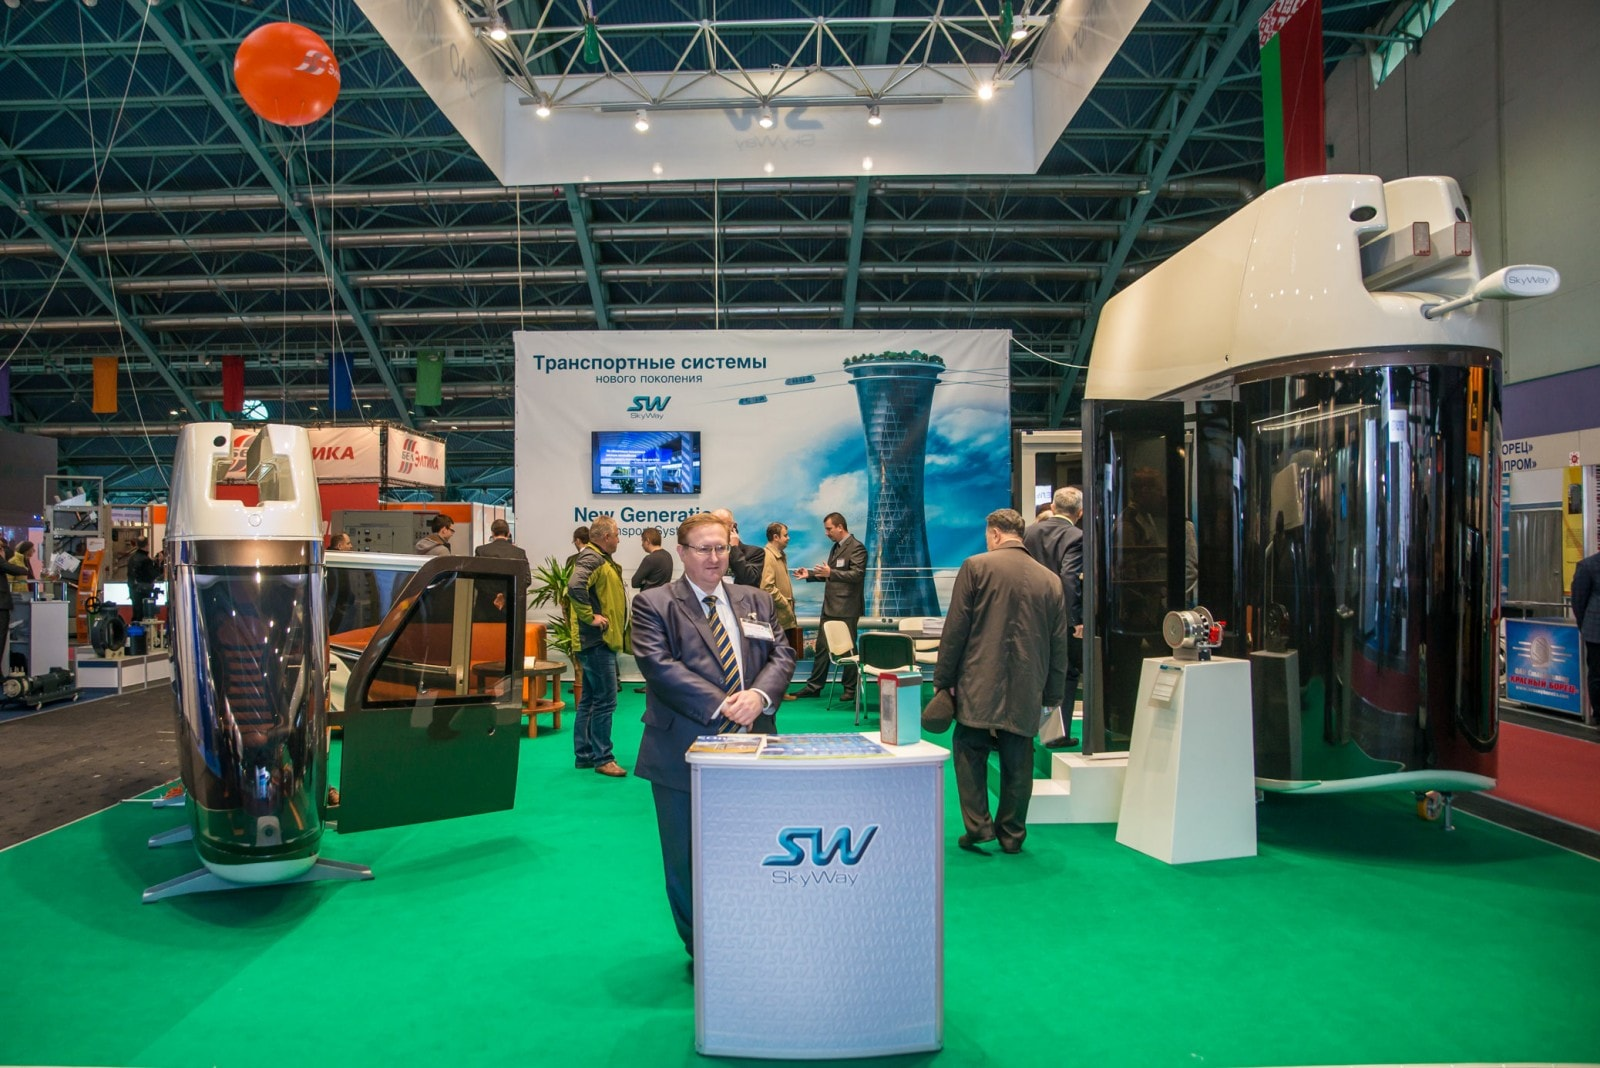 vistavka-energy-expo-2016-skyway